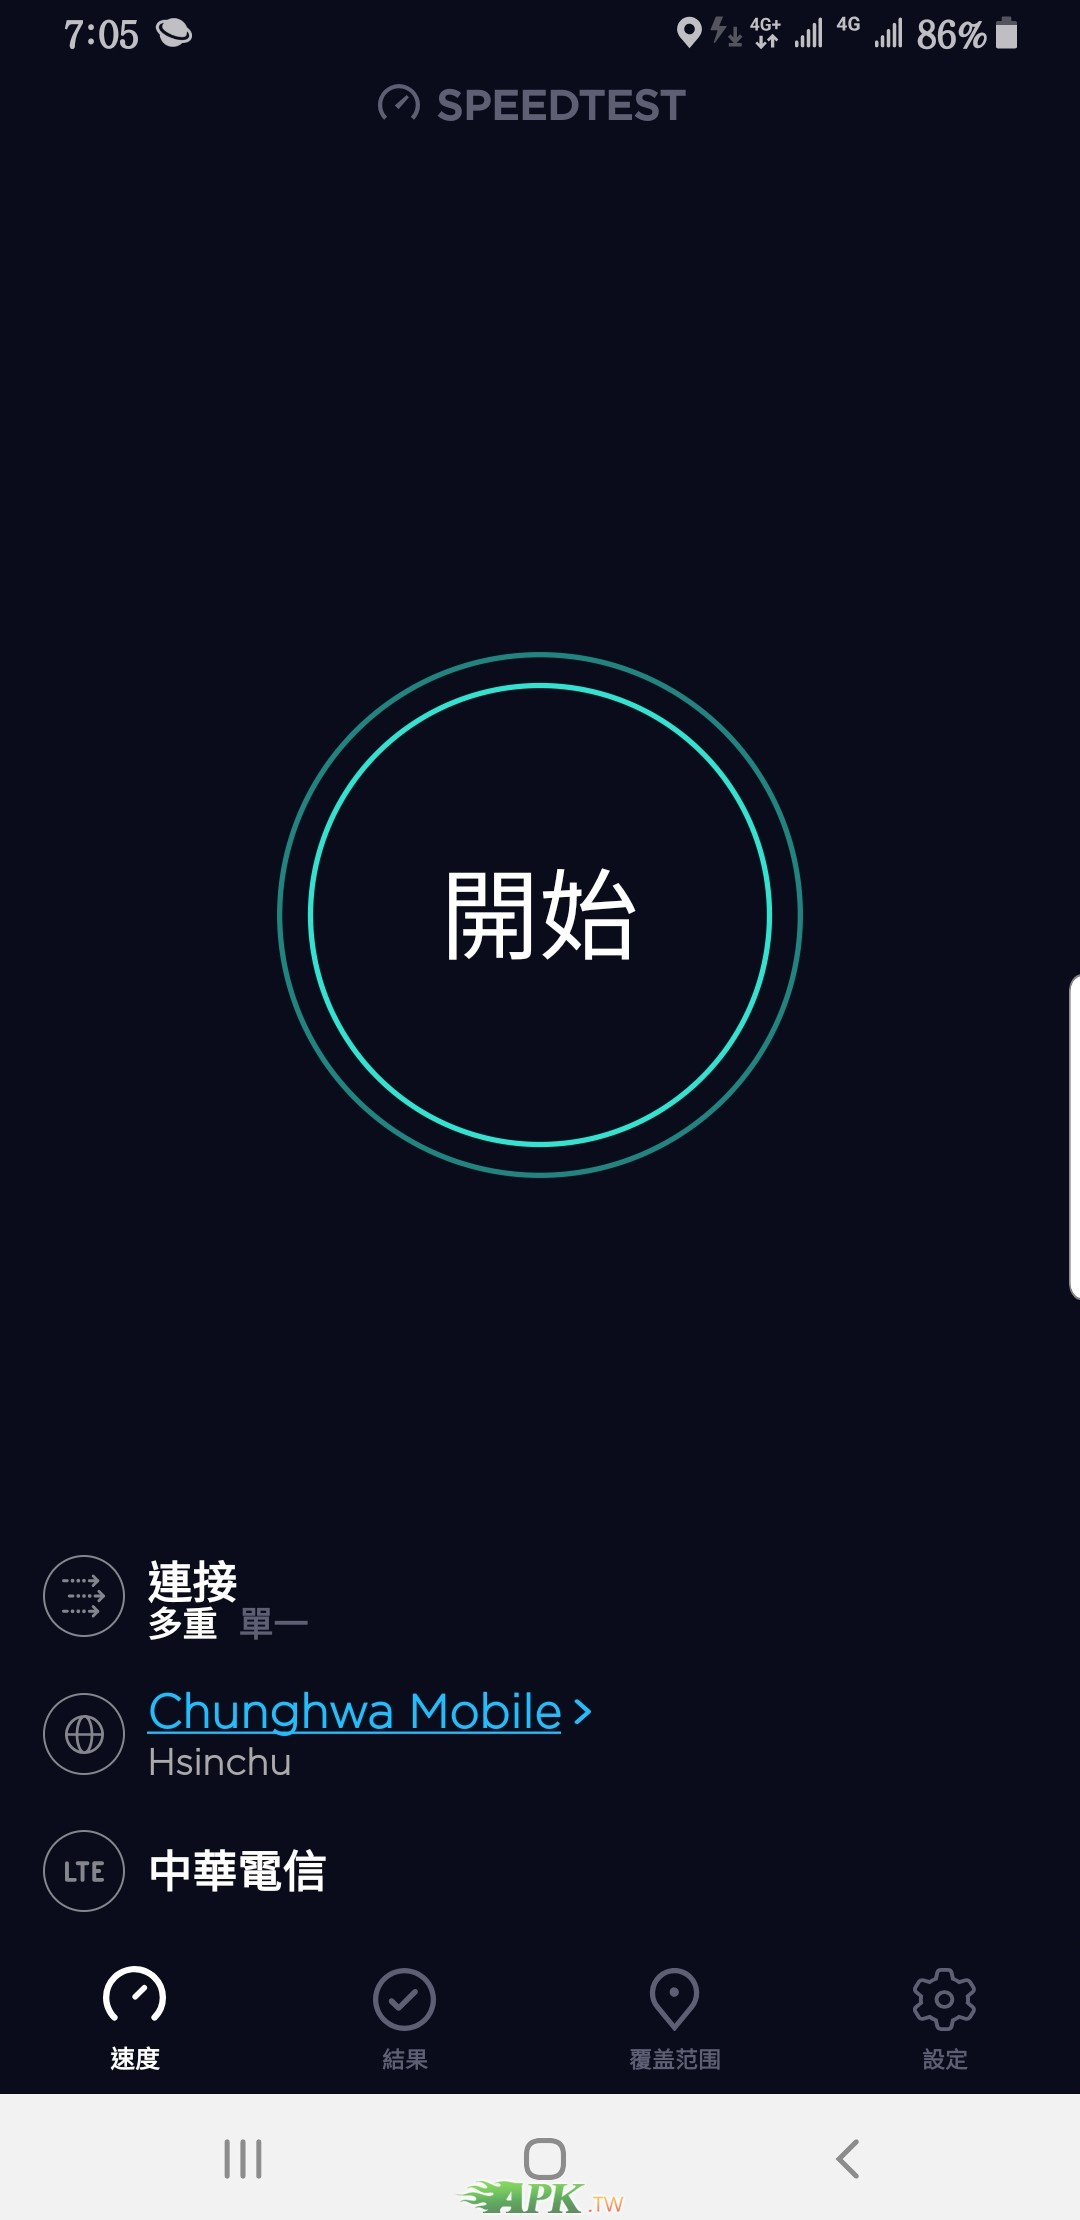 Screenshot_20190227-190519_Speedtest.jpg